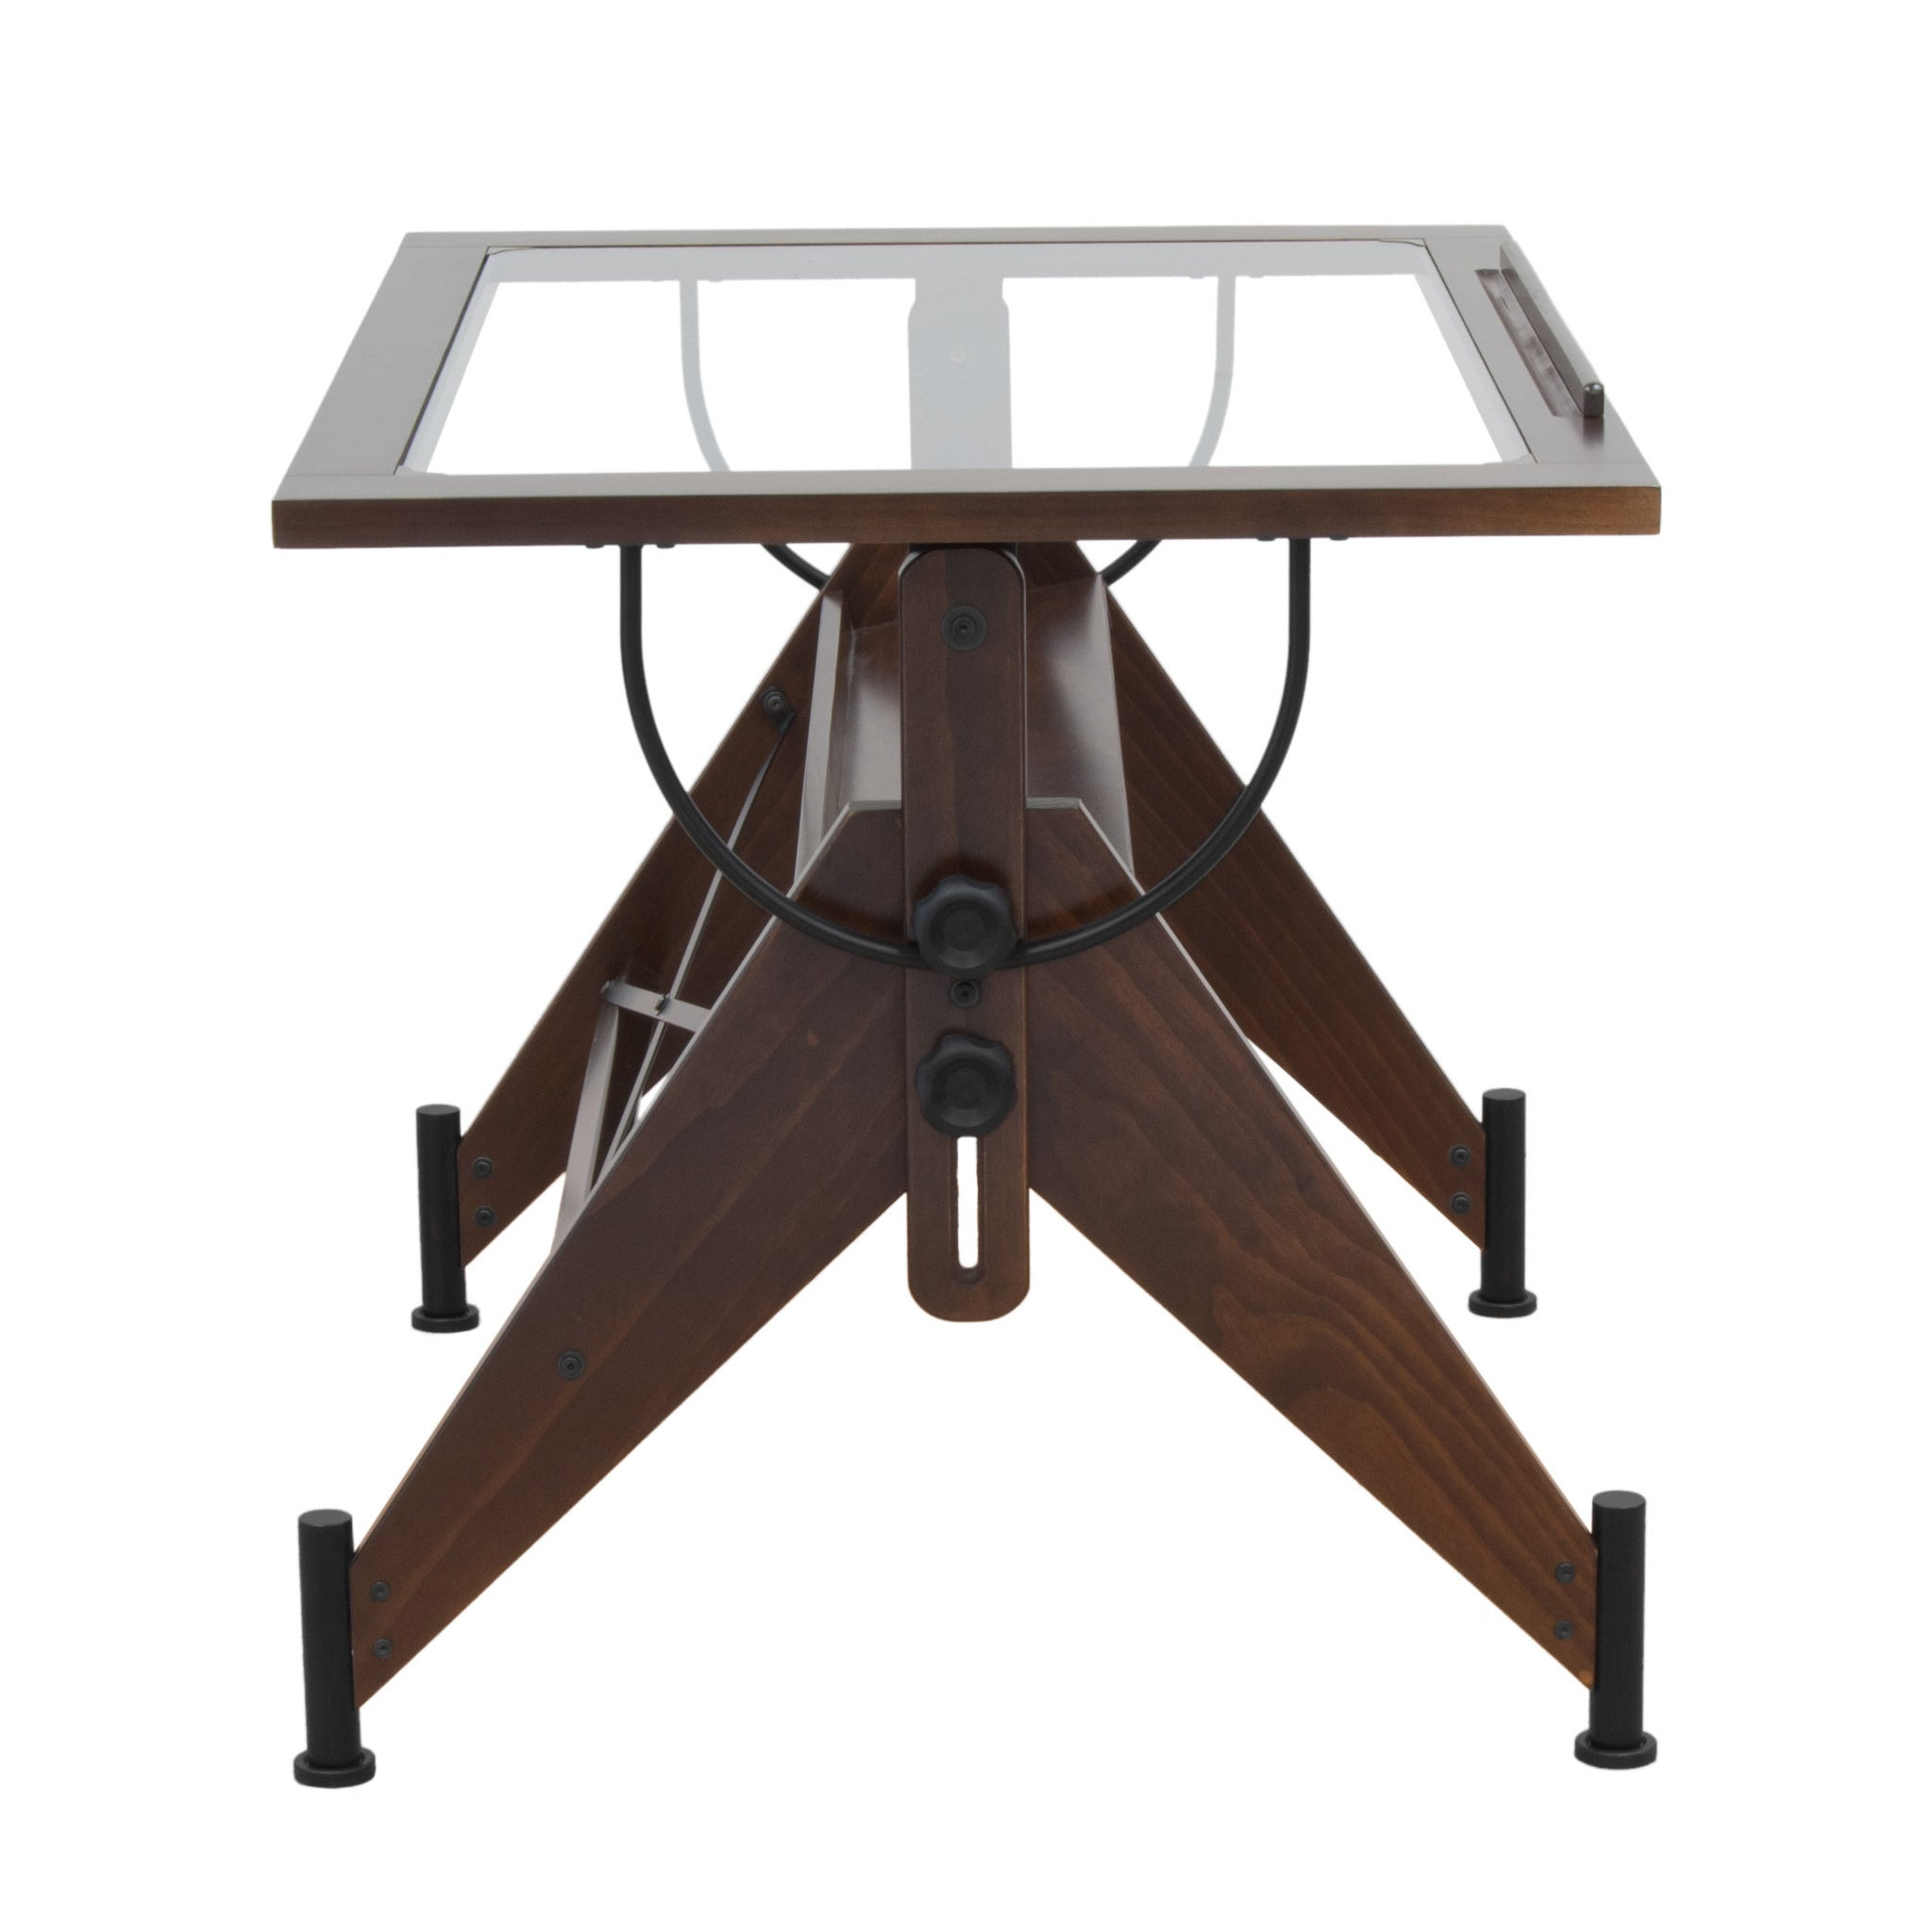 Studio Designs Aries 42 Inch Wide Glass Top Drafting Table Free Shipping Today 16350067